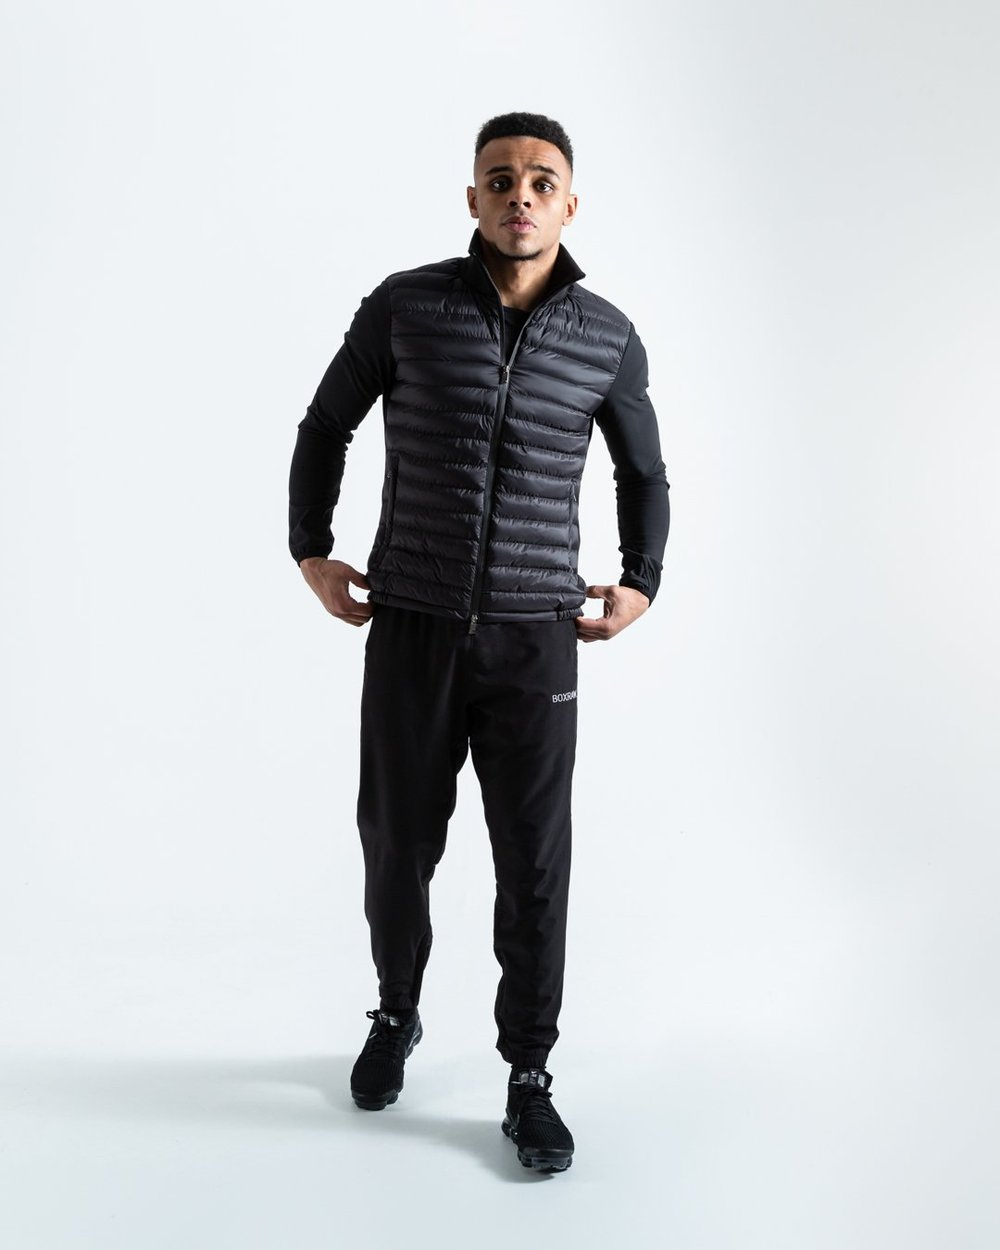 TAPIA JACKET - BLACK - Pandemic Fight Gear Inc.